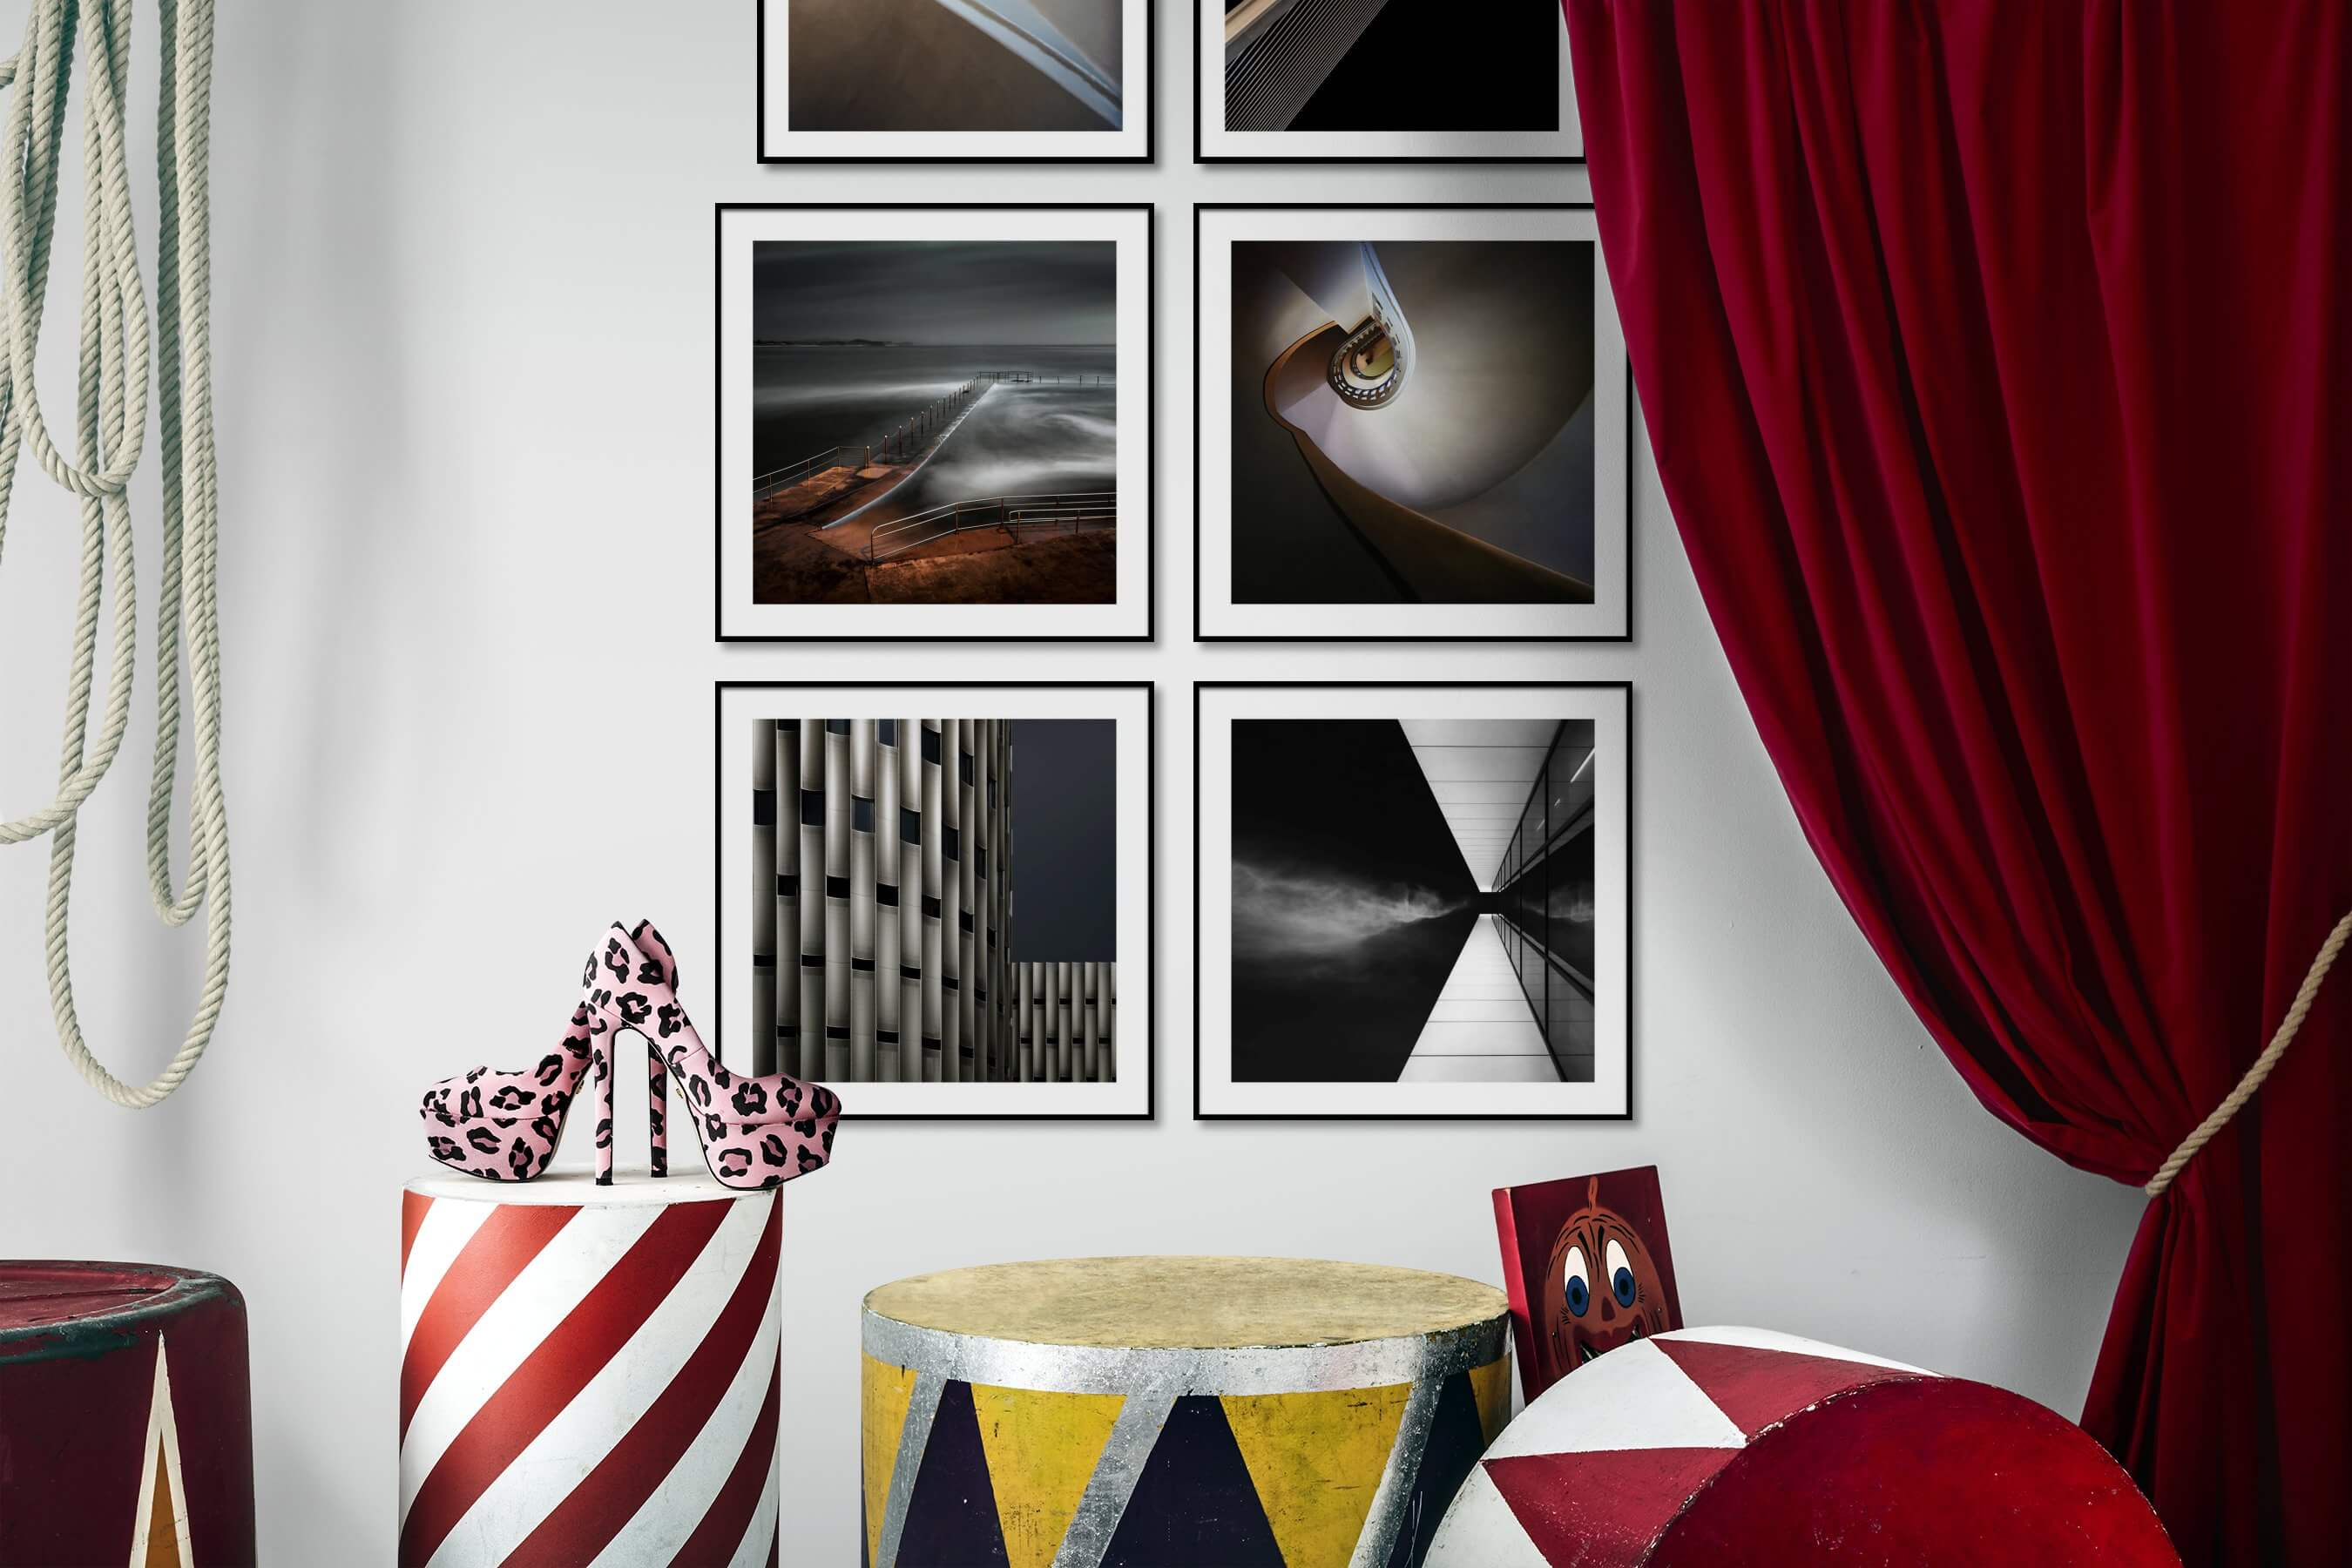 Gallery wall idea with six framed pictures arranged on a wall depicting For the Moderate, For the Minimalist, Beach & Water, and Black & White